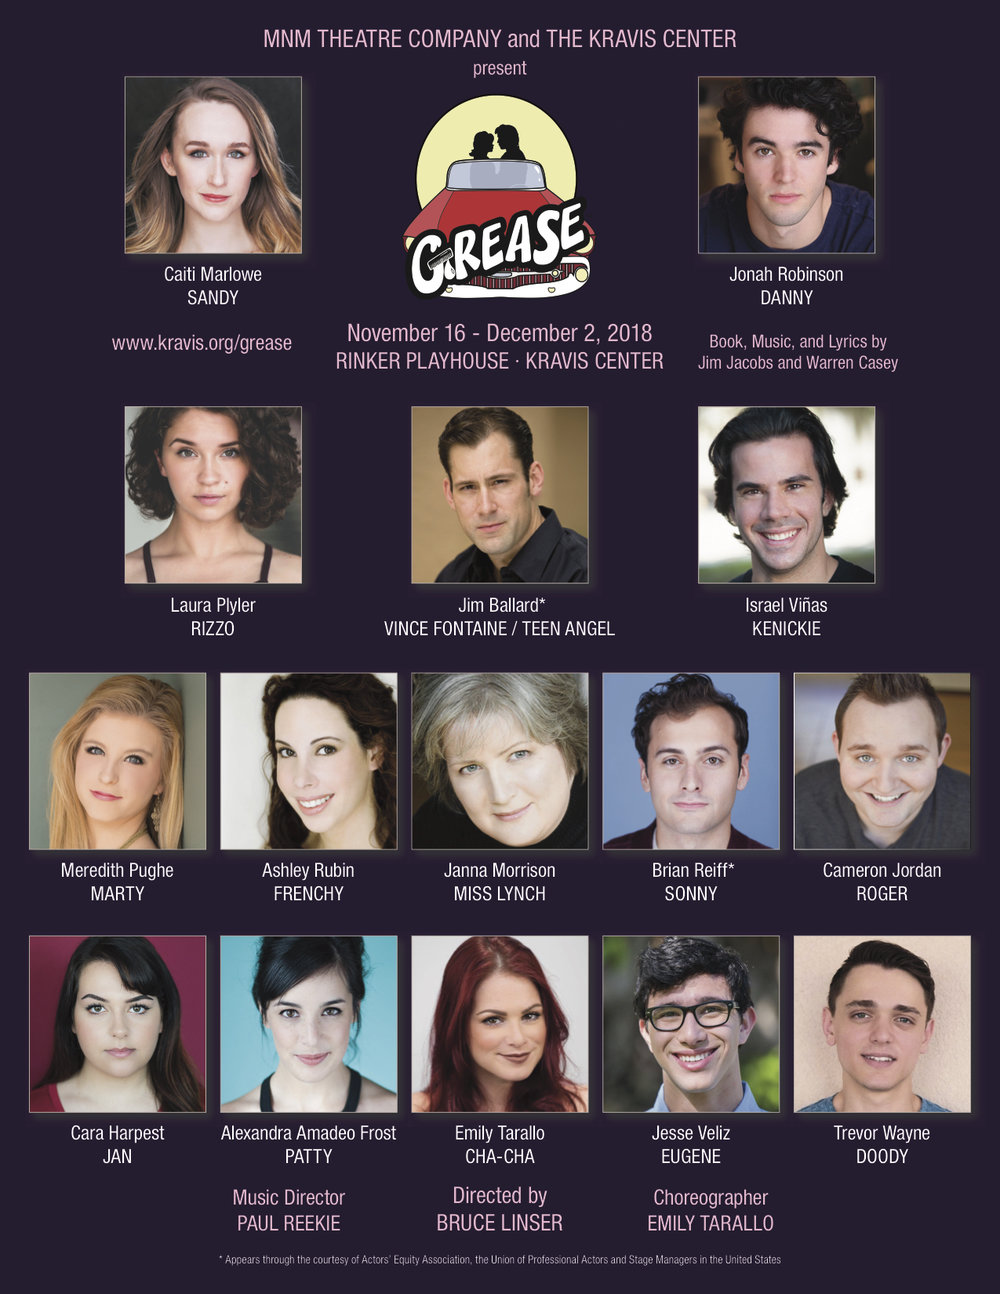 Coming soon! - I am currently playing Roger in Grease at the Kravis Center in West Palm Beach, FL!I am so excited to be making my MNM Theatre Company debut with such a talented cast!For more information visit Kravis.org!